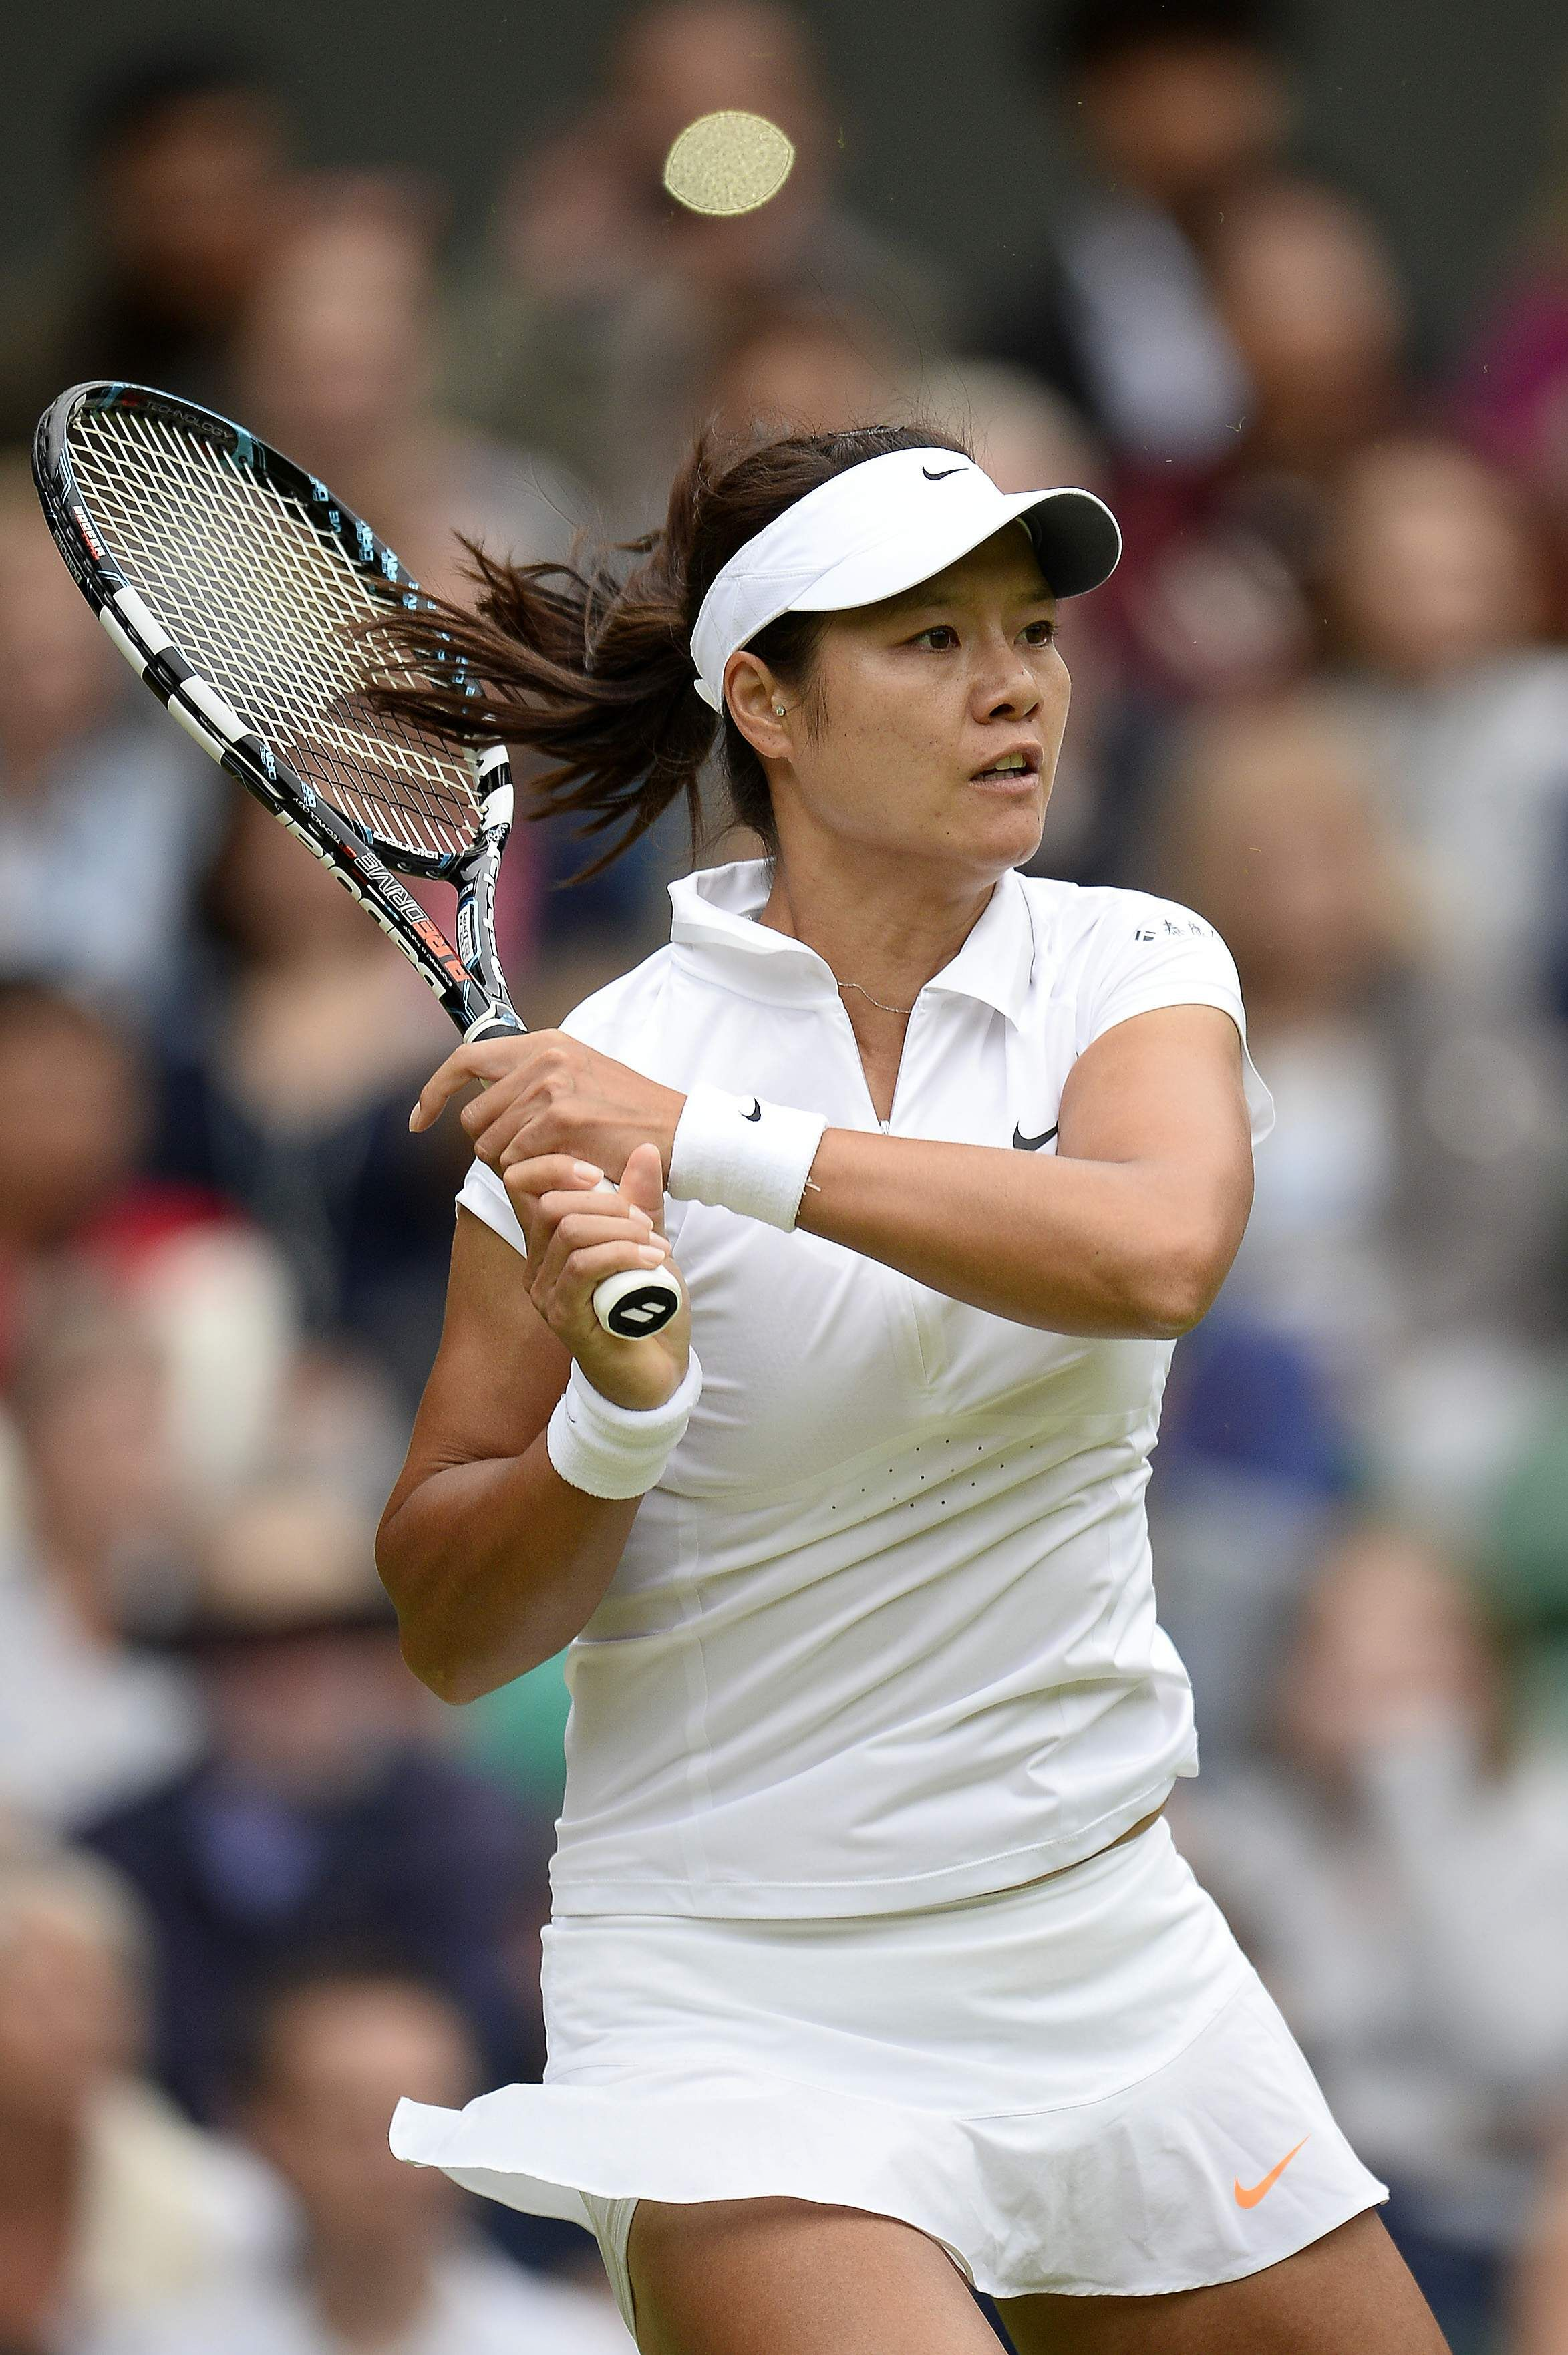 Li Na Quarter Final Match On Day8 Of The Wimbledon Tennis Championships July 2 2013 Wta Na Wimbledon Con Imagenes Tenis Deportes Campeones